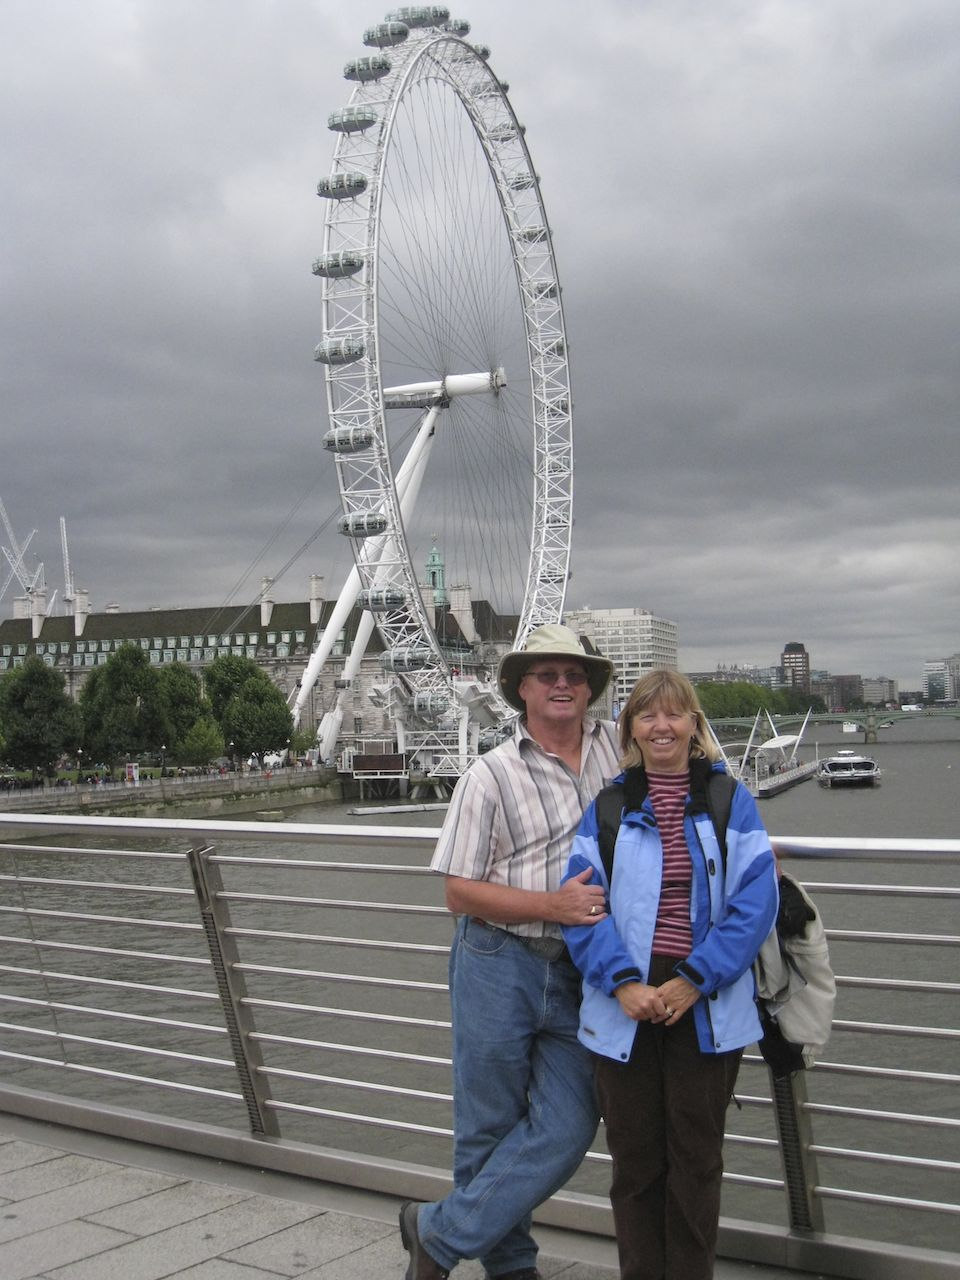 Mom and Dad in front of the London Eye